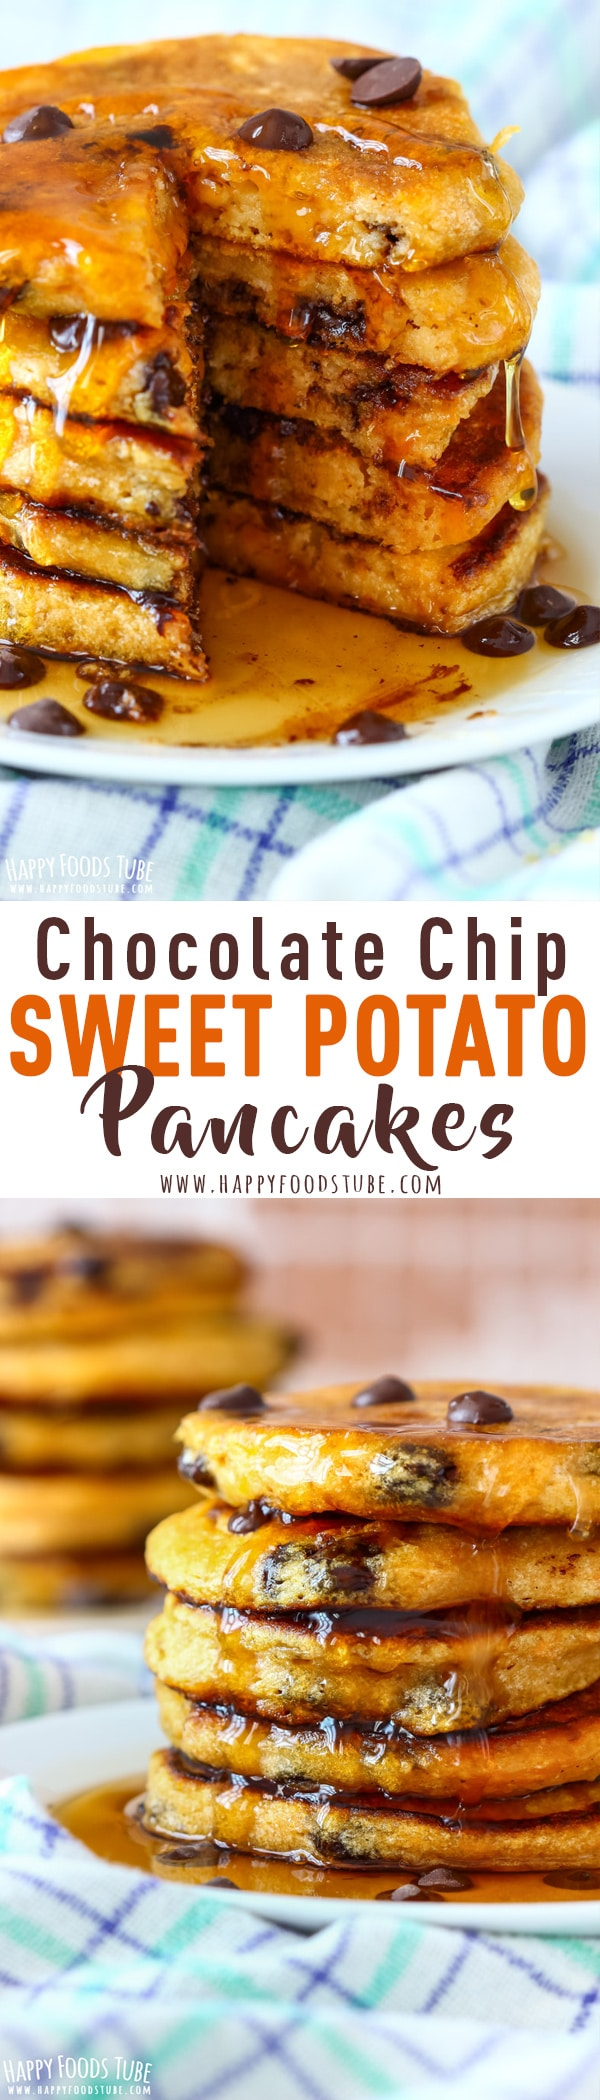 Chocolate Chip Sweet Potato Pancakes are one of the weekend breakfast recipes you will immediately fall in love with. Light, fluffy and filled with chocolate. Step by step how to make sweet potato pancakes. #sweetpotato #pancakes #chocolatechip #breakfast